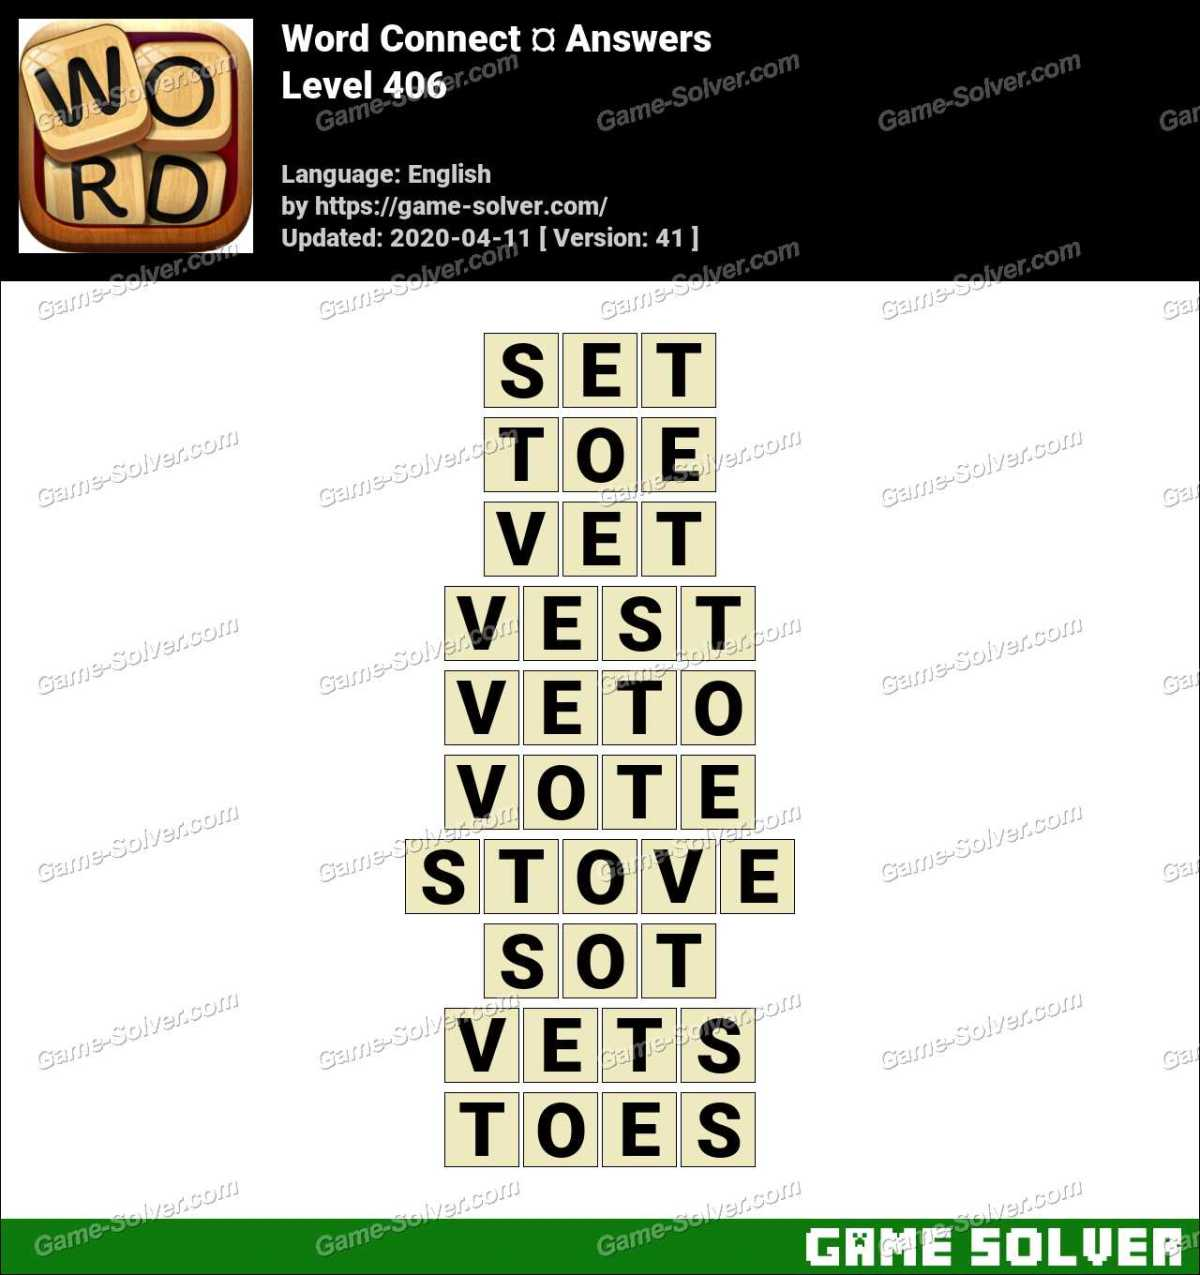 Word Connect Level 406 Answers